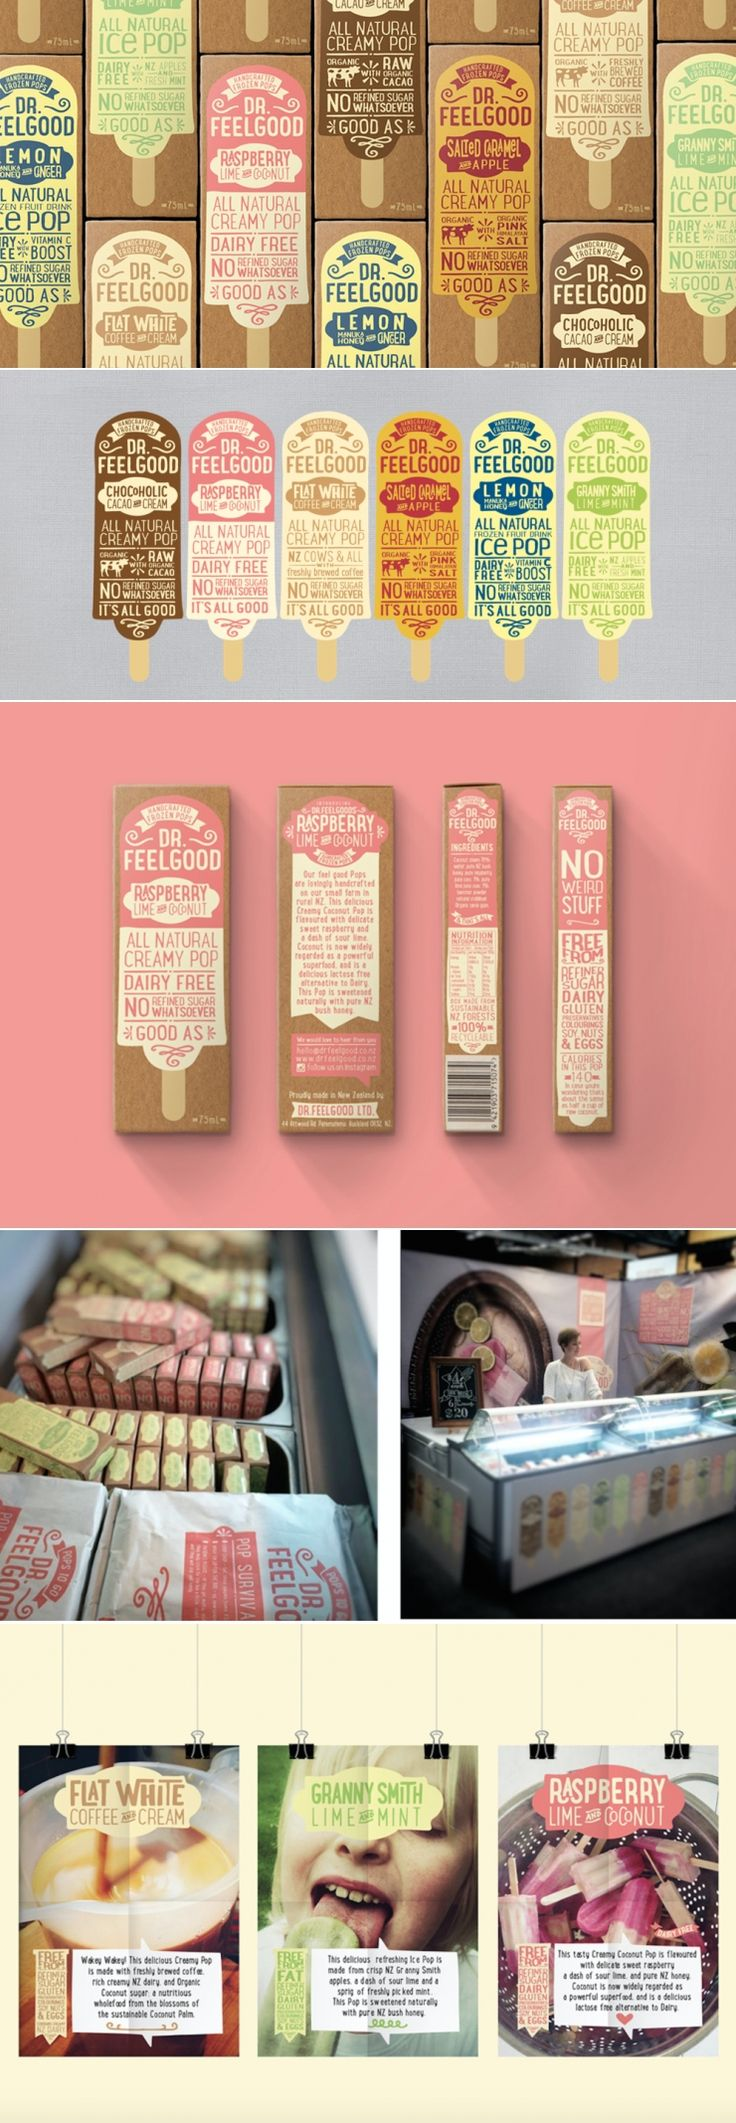 Dr.Feelgood Frozen Pops — The Dieline | Packaging & Branding Design & Innovation News